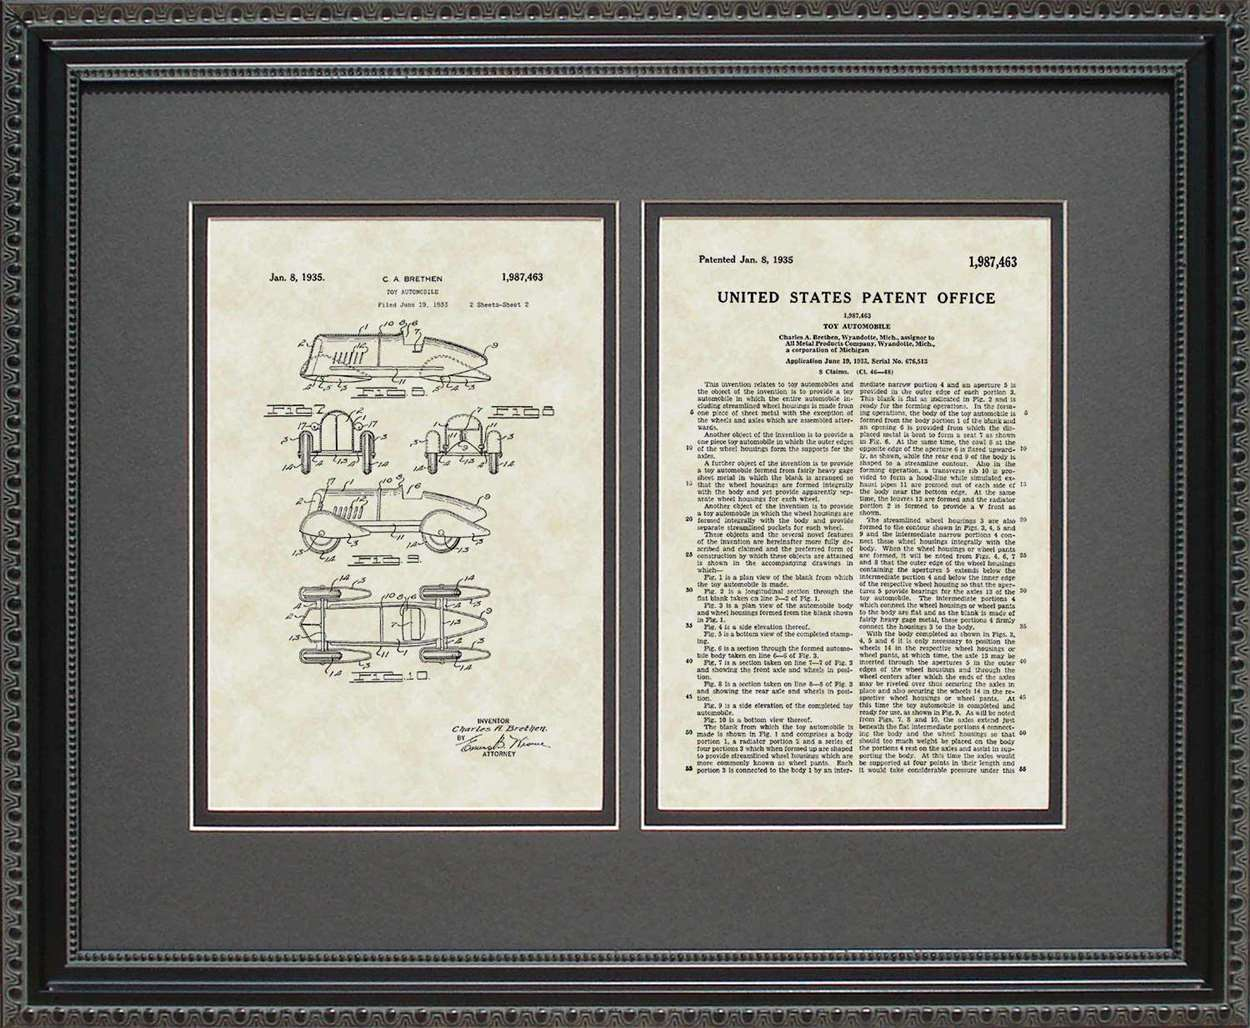 Futuristic Speed Racer Patent, Art & Copy, Brethen, 1935, 16x20